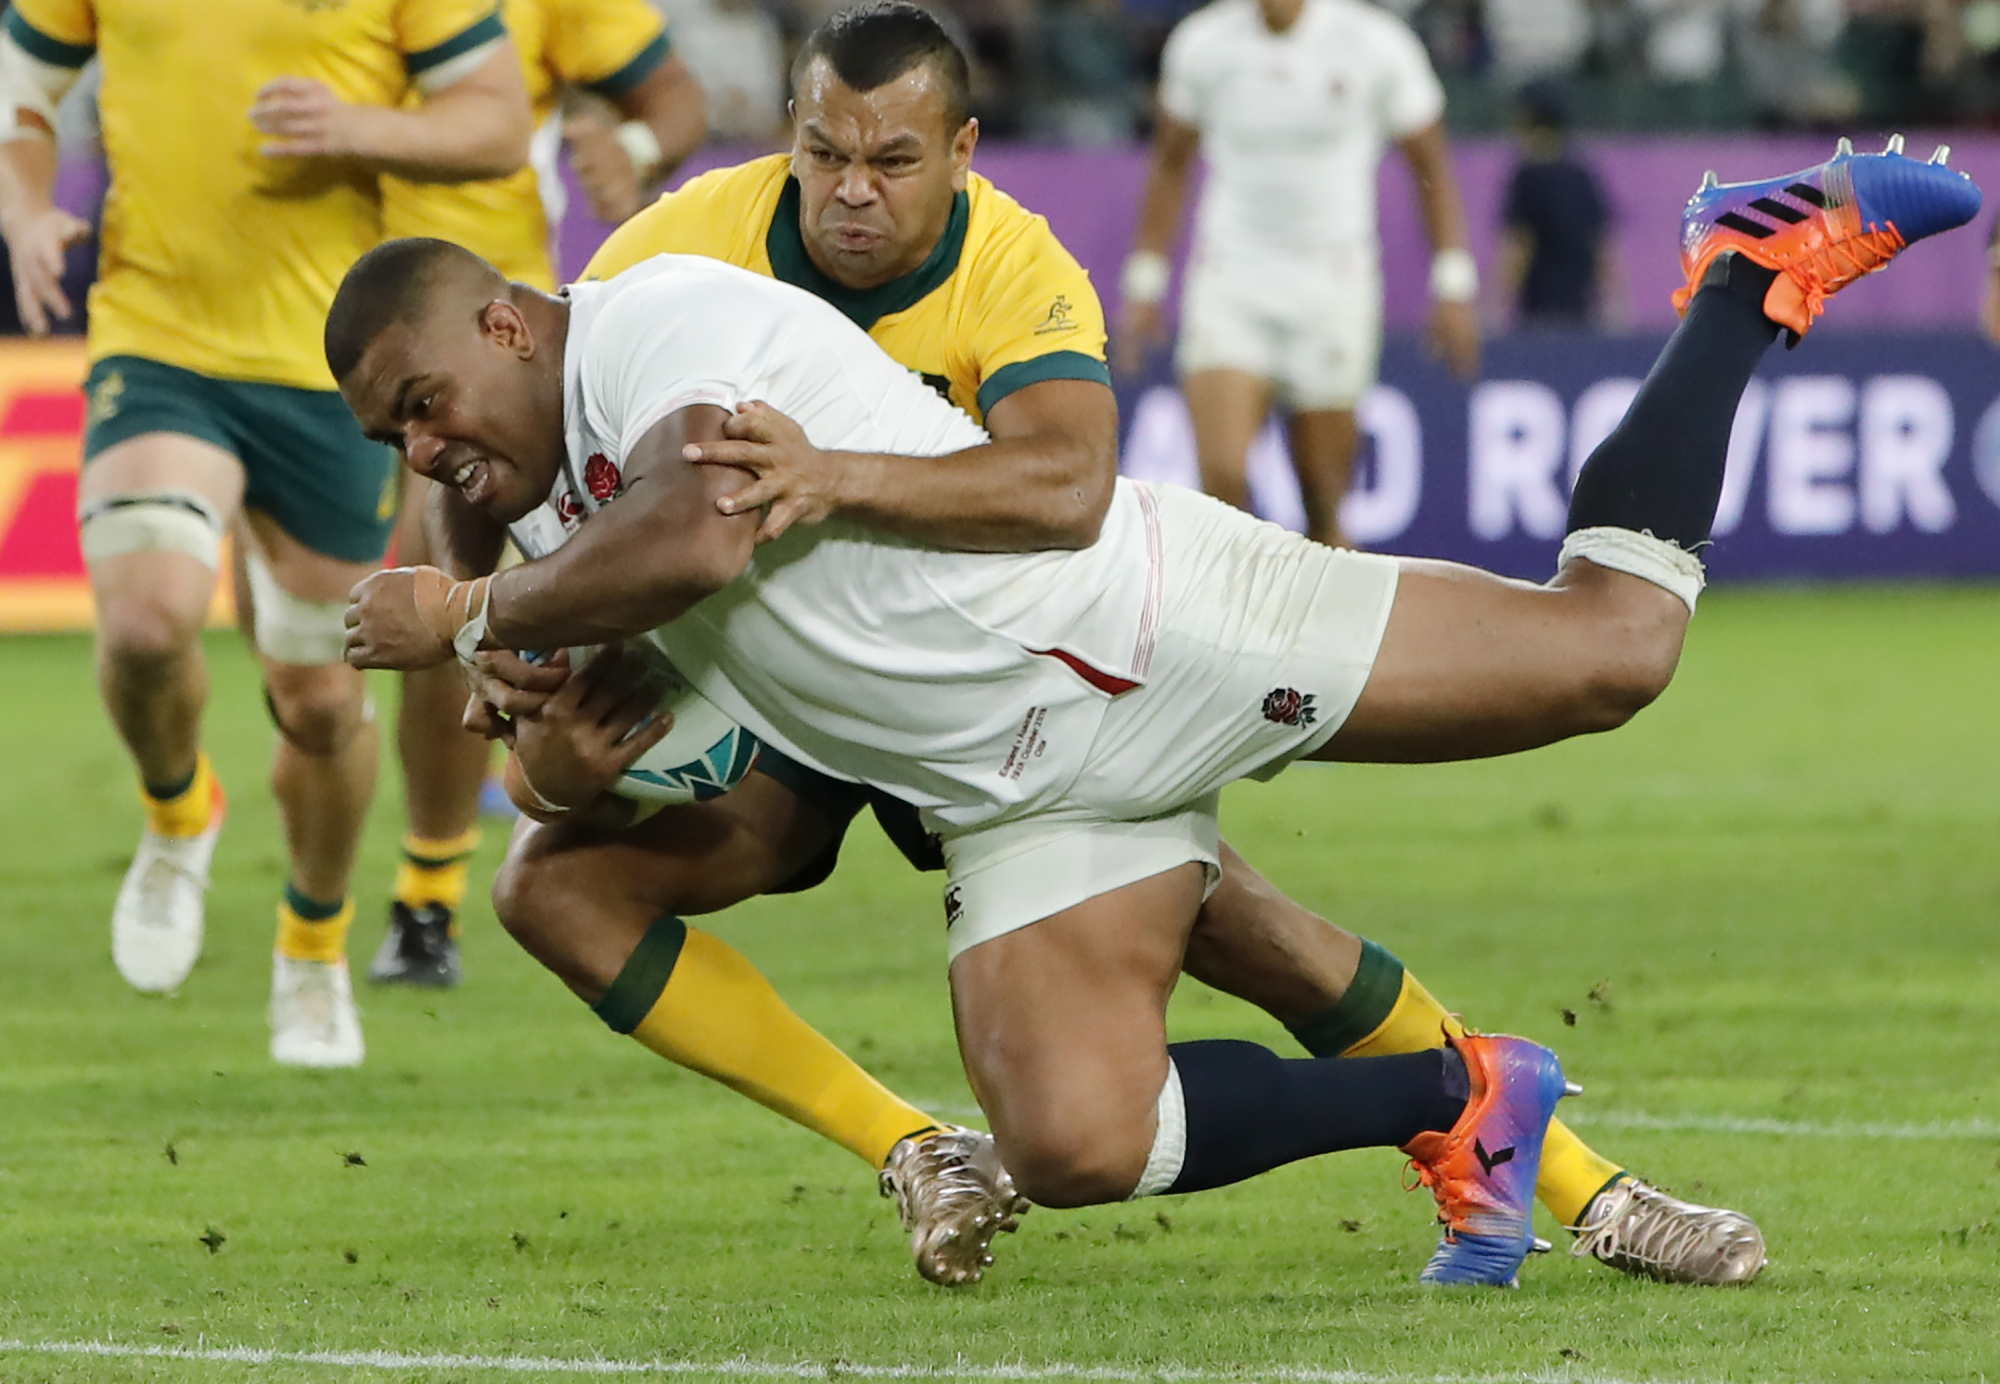 England's Kyle Sinckler scores a try against Australia in a Rugby World Cup quarterfinal match at Oita Stadium on Saturday. England beat Australia 40-16. | AP